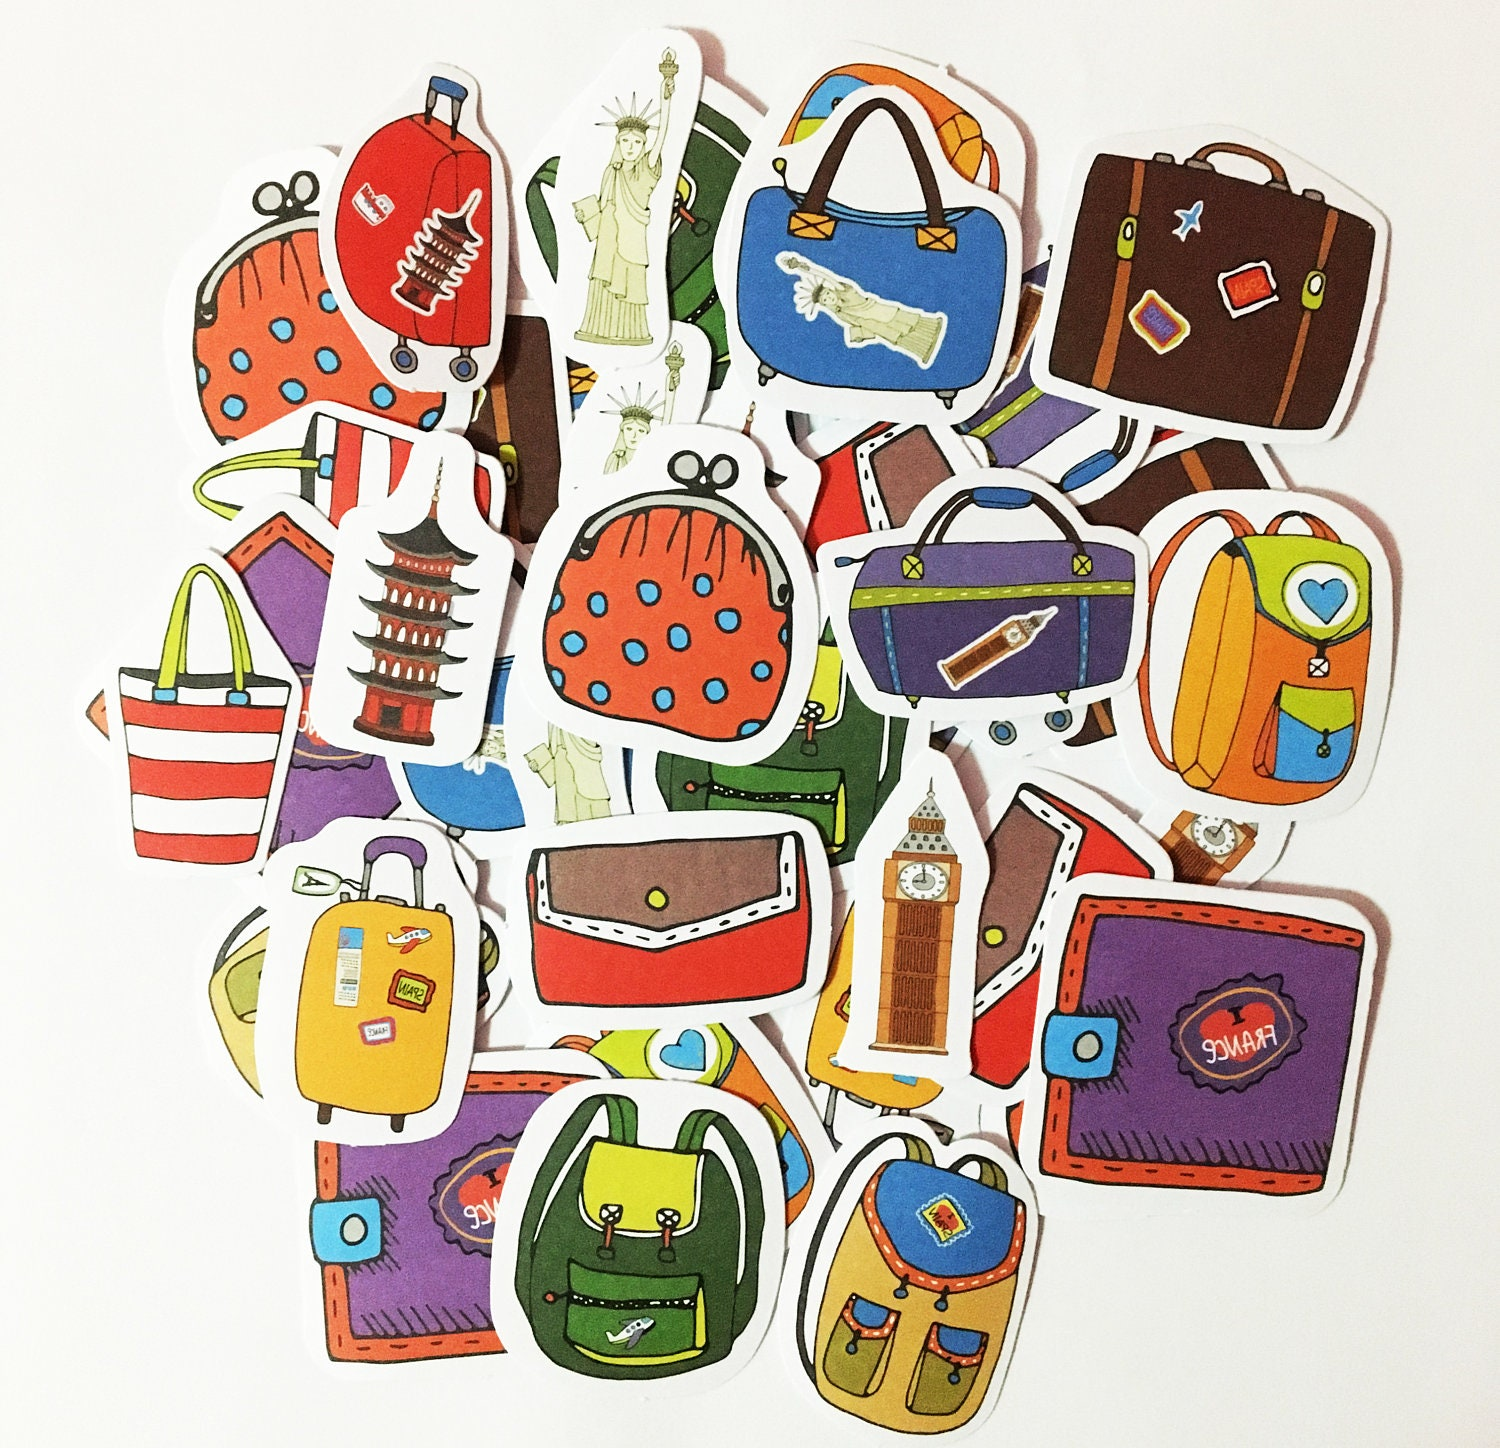 How to scrapbook a road trip - 45 Pcs Travel Bags Sticker Luggage Sticker Flakes Around The World Filofax Stickers Scrapbook Road Trip Schedule Sticker Vacation